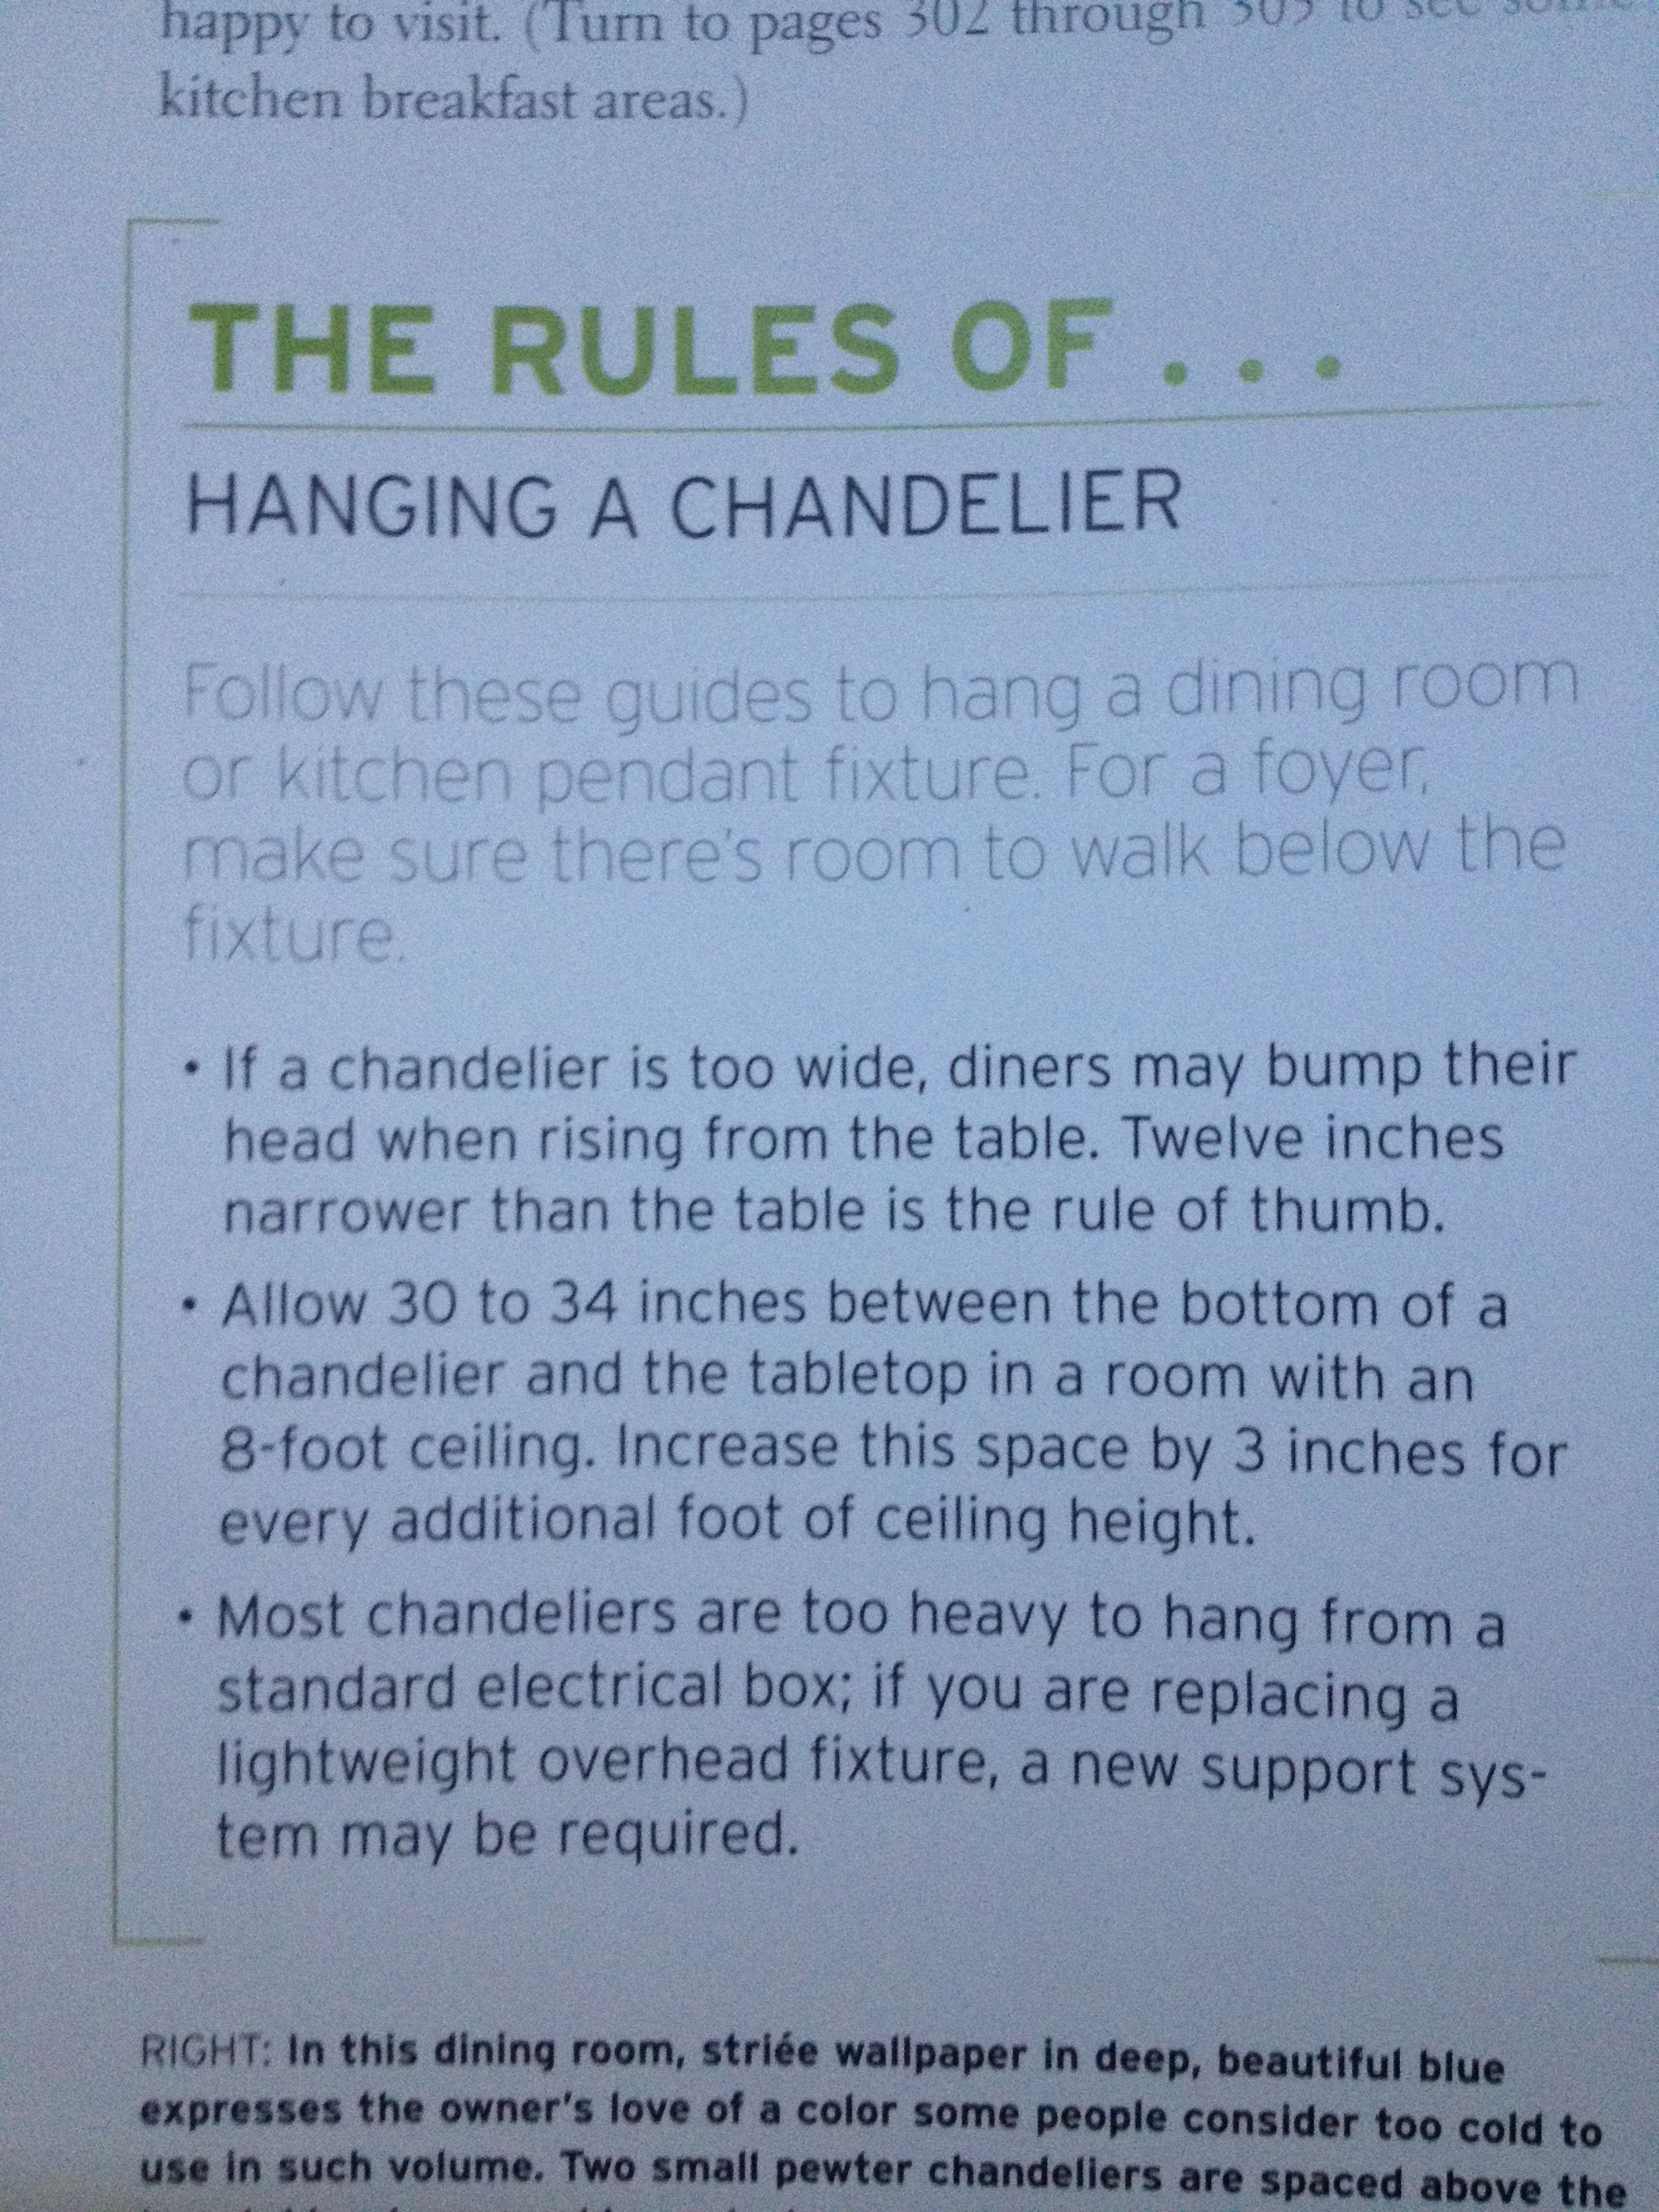 Rules of hanging a chandelier design details pinterest rules of hanging a chandelier design details pinterest chandeliers design projects and interiors arubaitofo Gallery